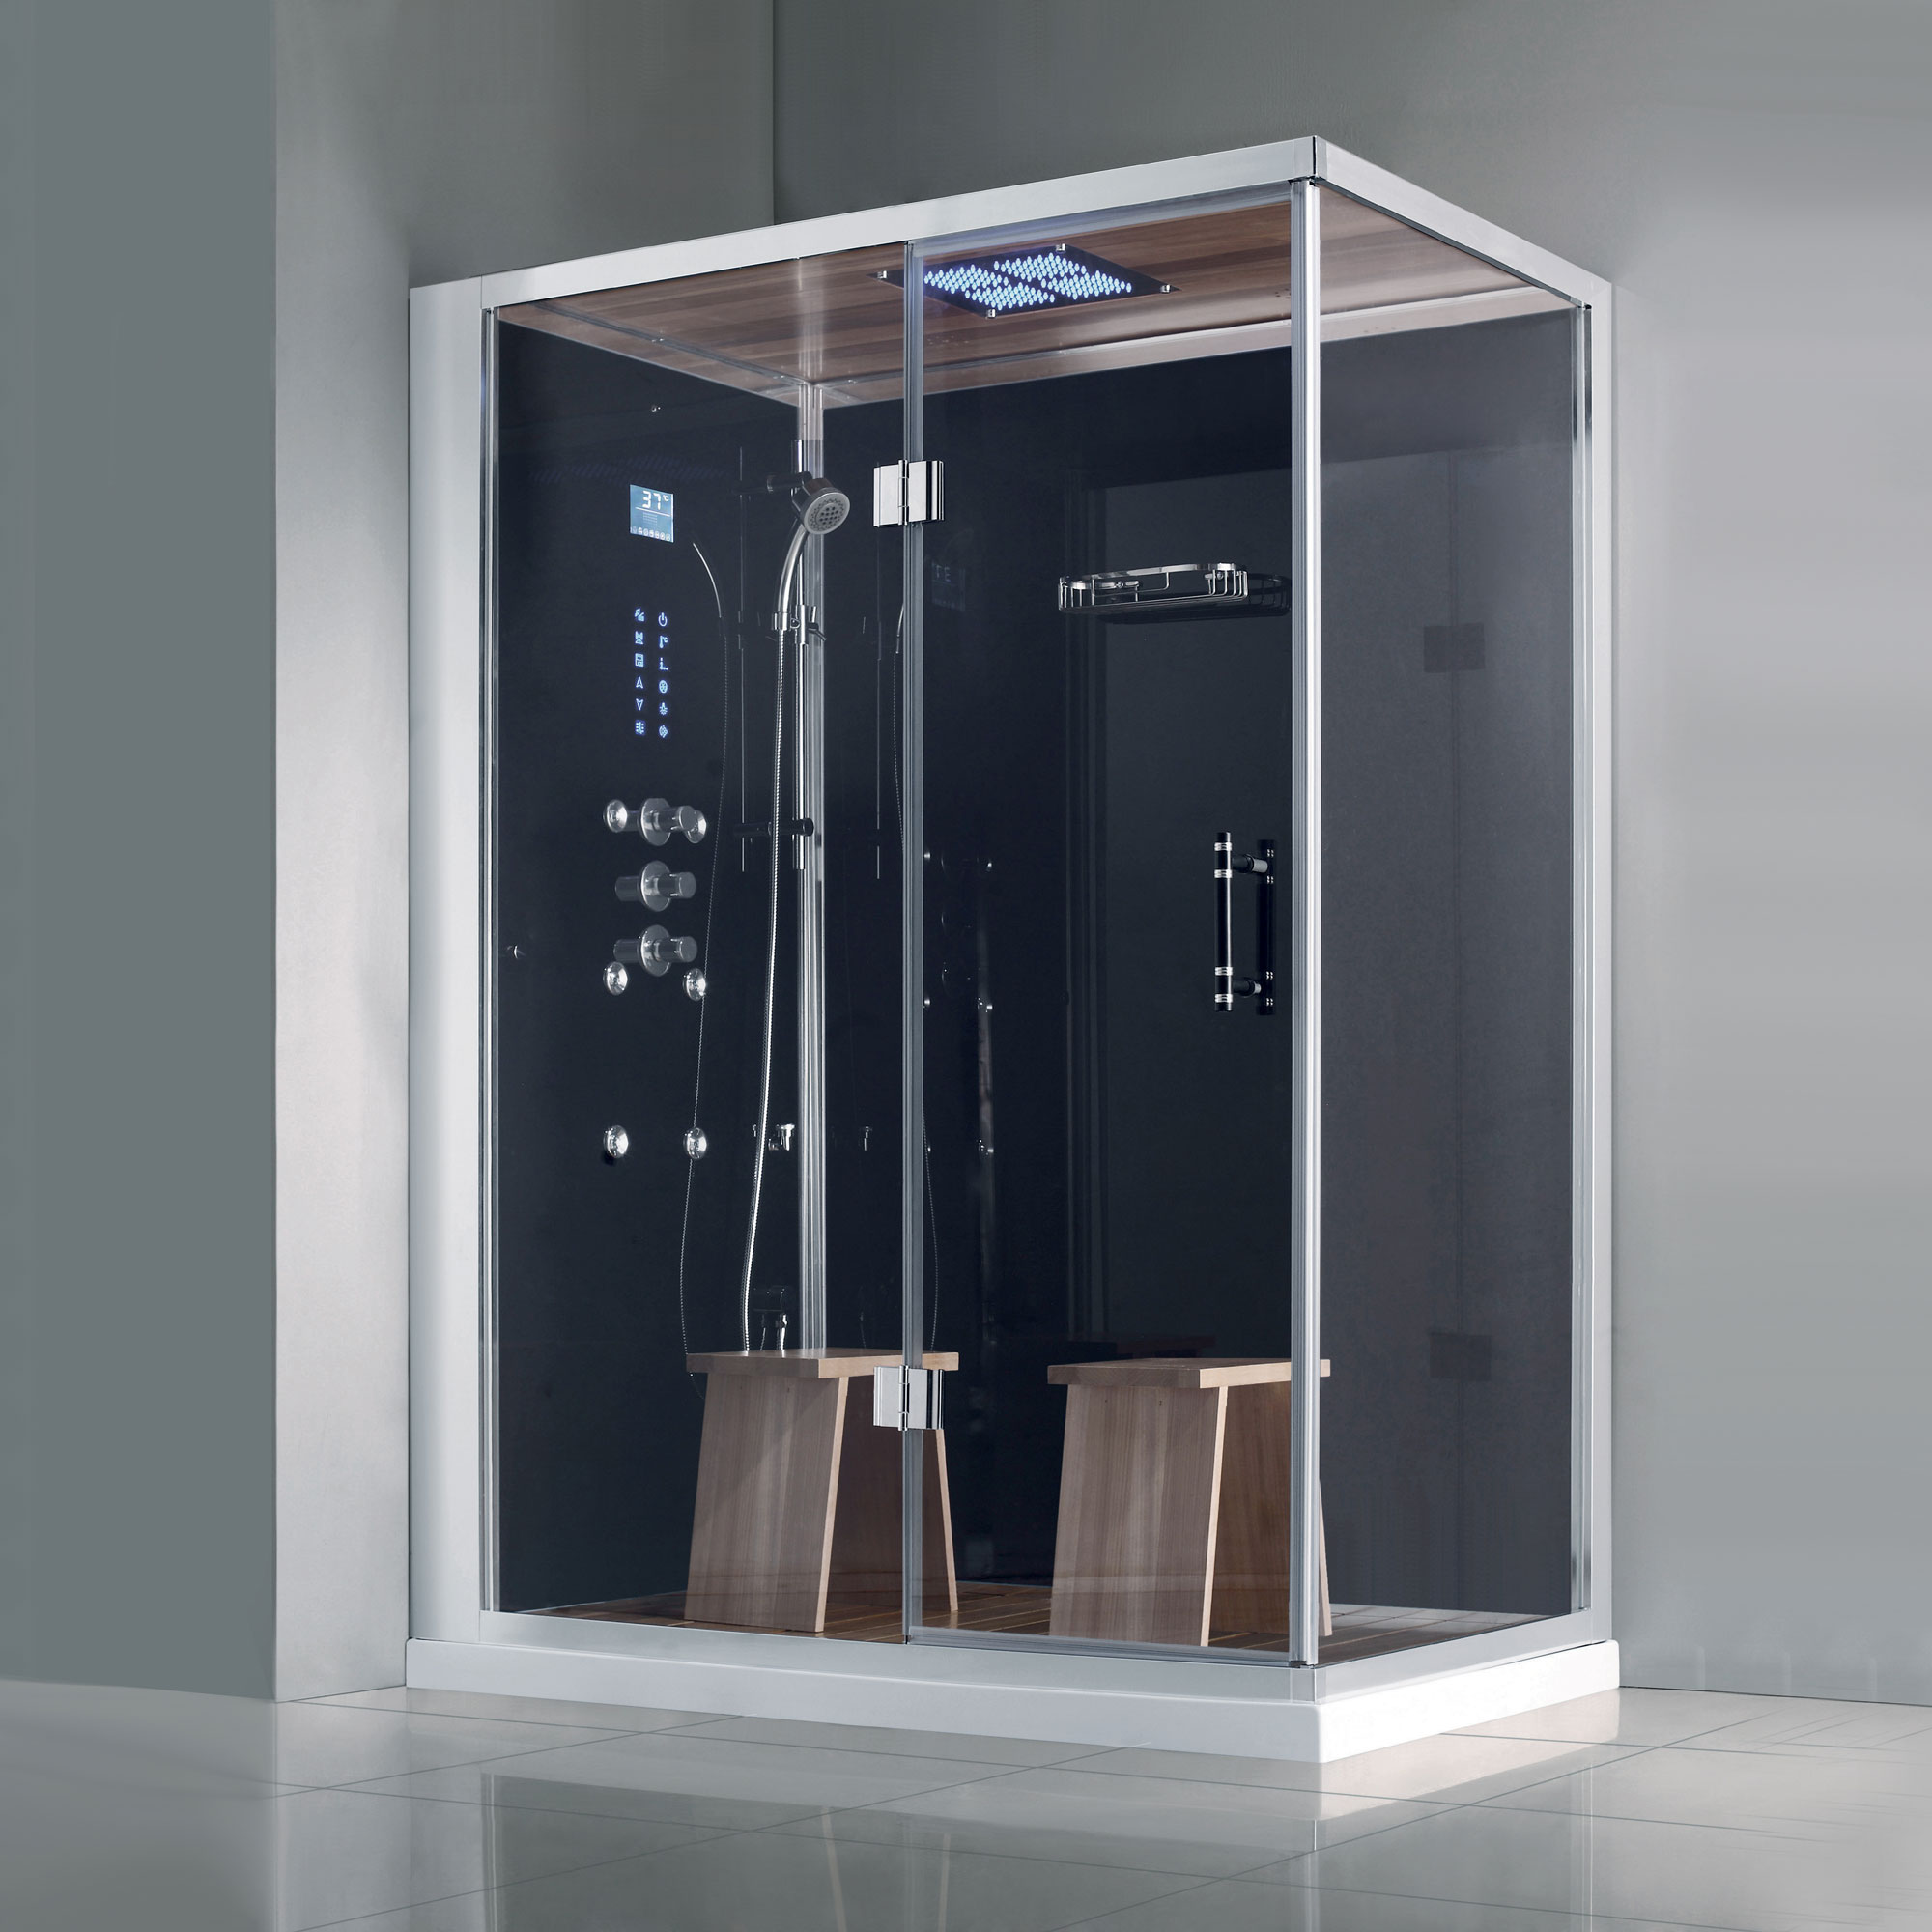 athena ws 141r steam shower - Luxury Steam Showers